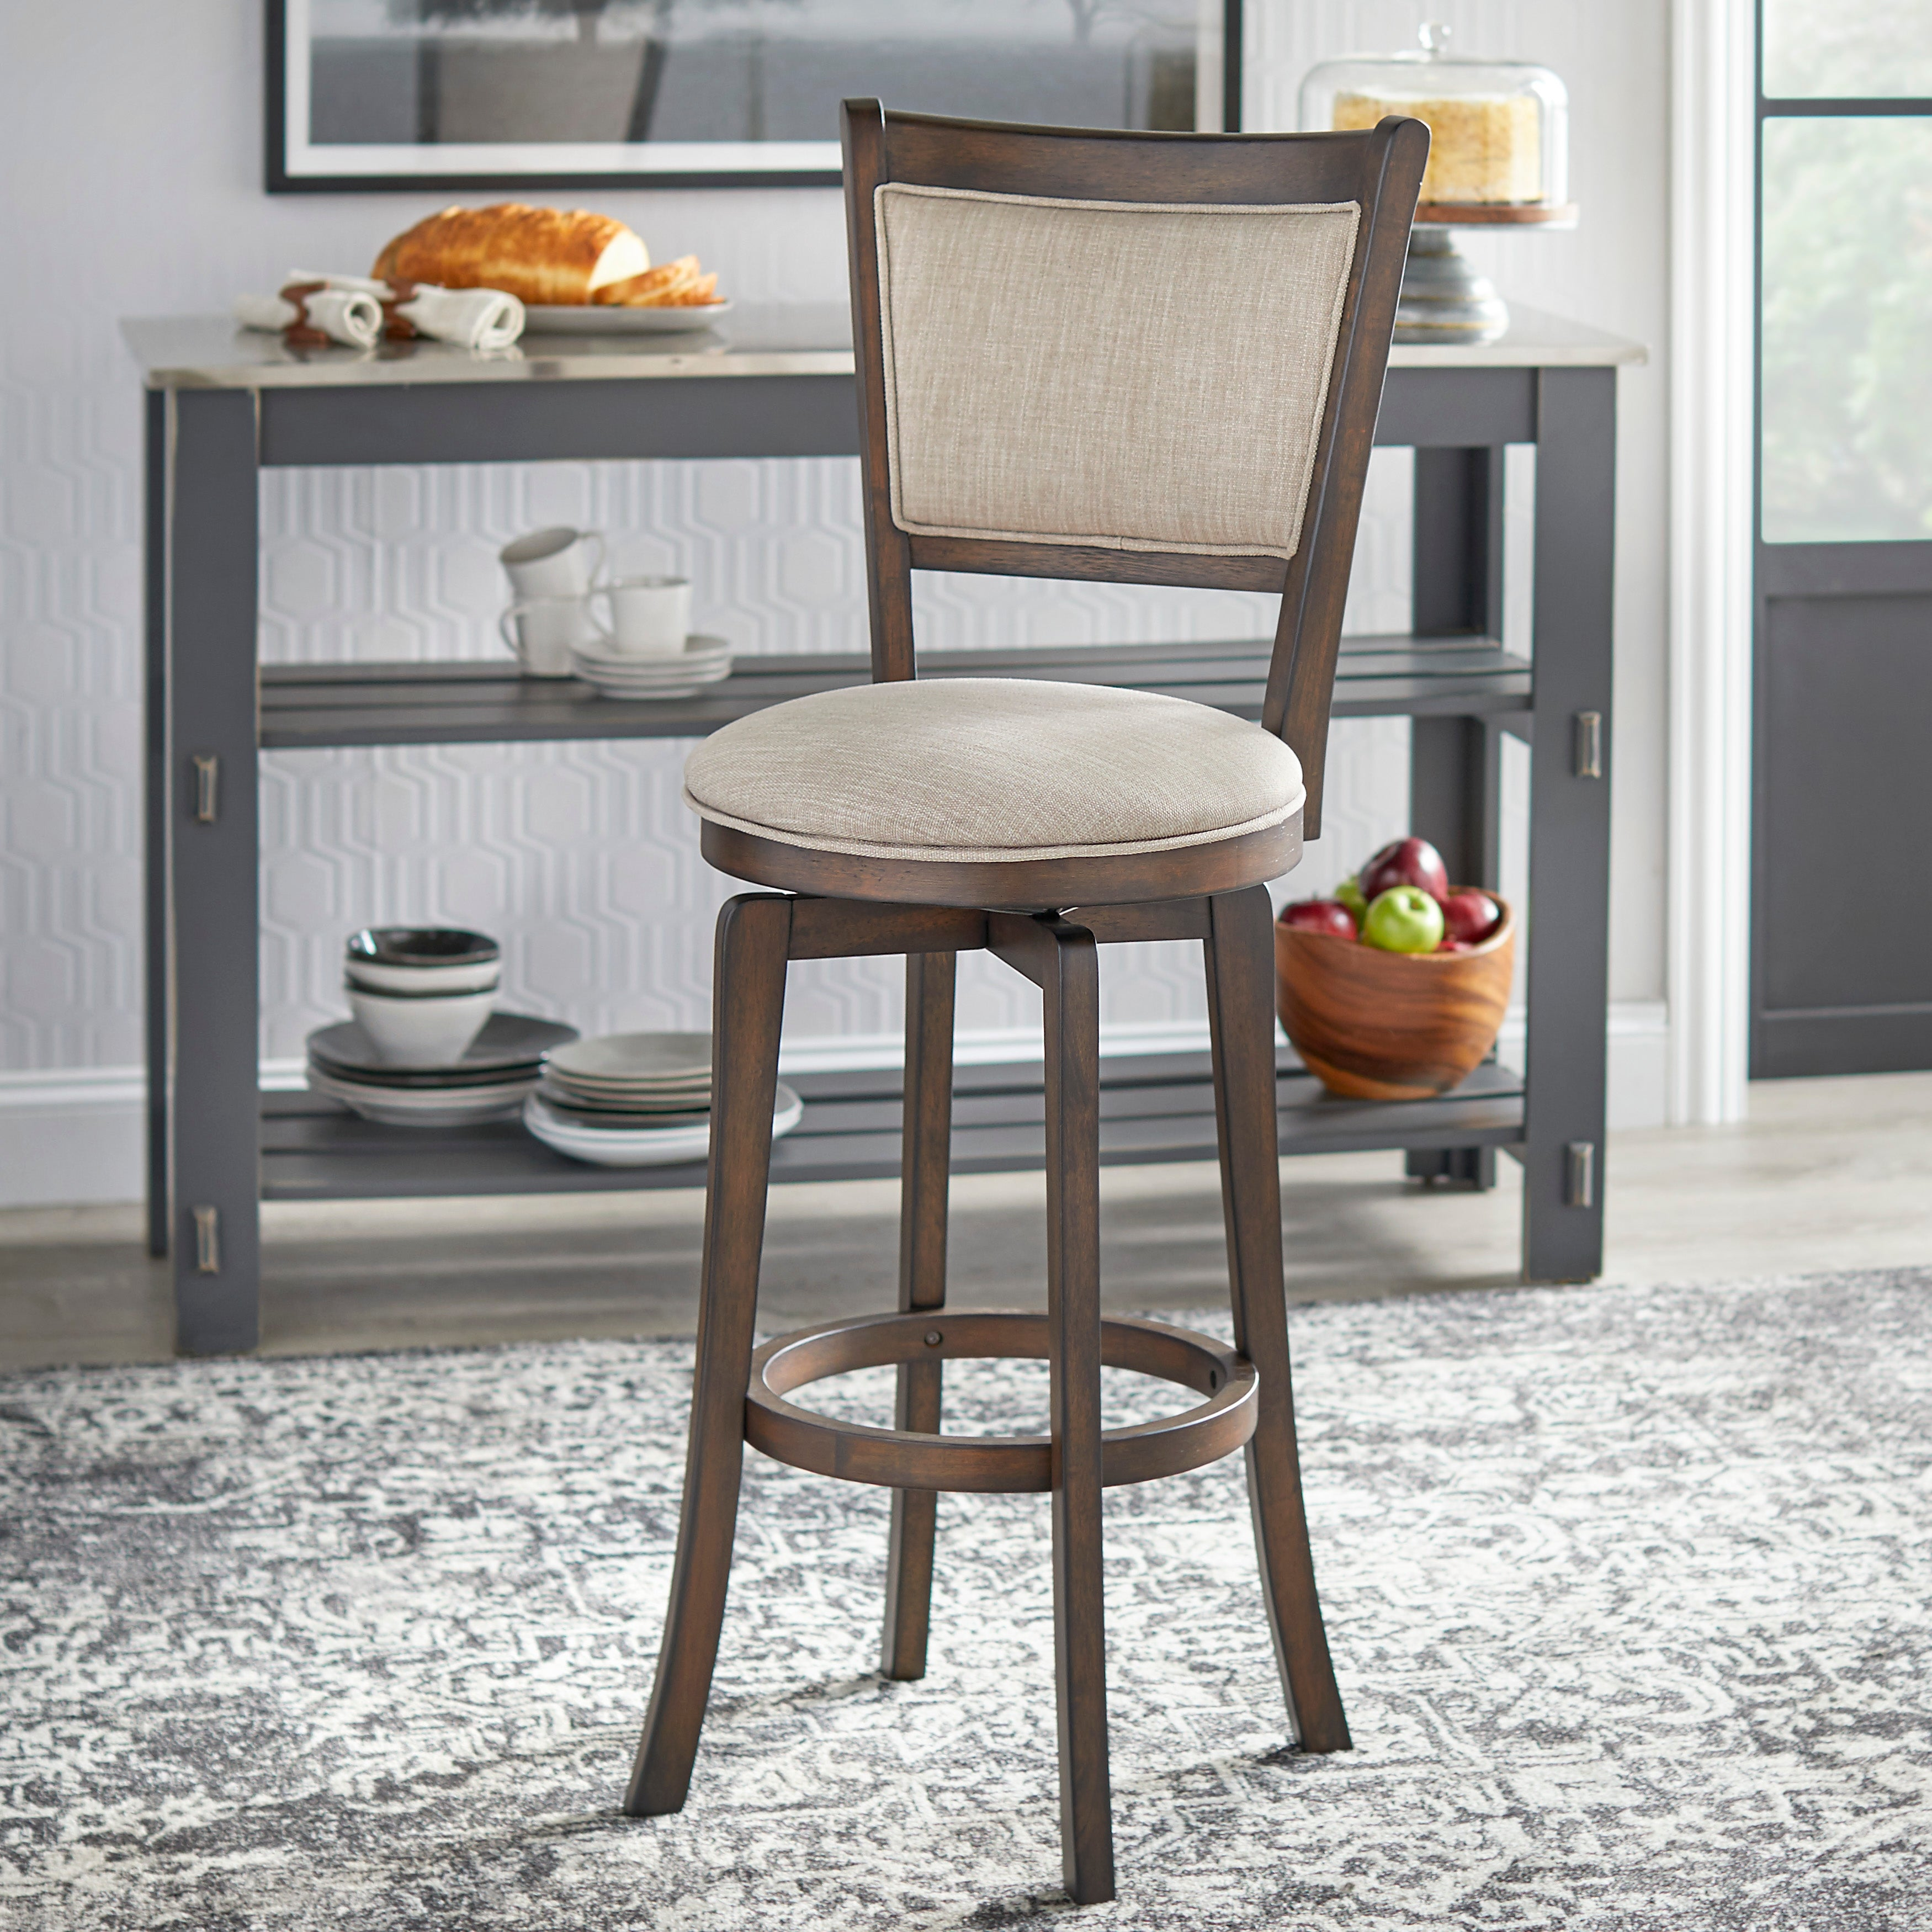 Simple Living French Country 30 Inch Swivel Barstool On Sale Overstock 11877633 Weathered Grey